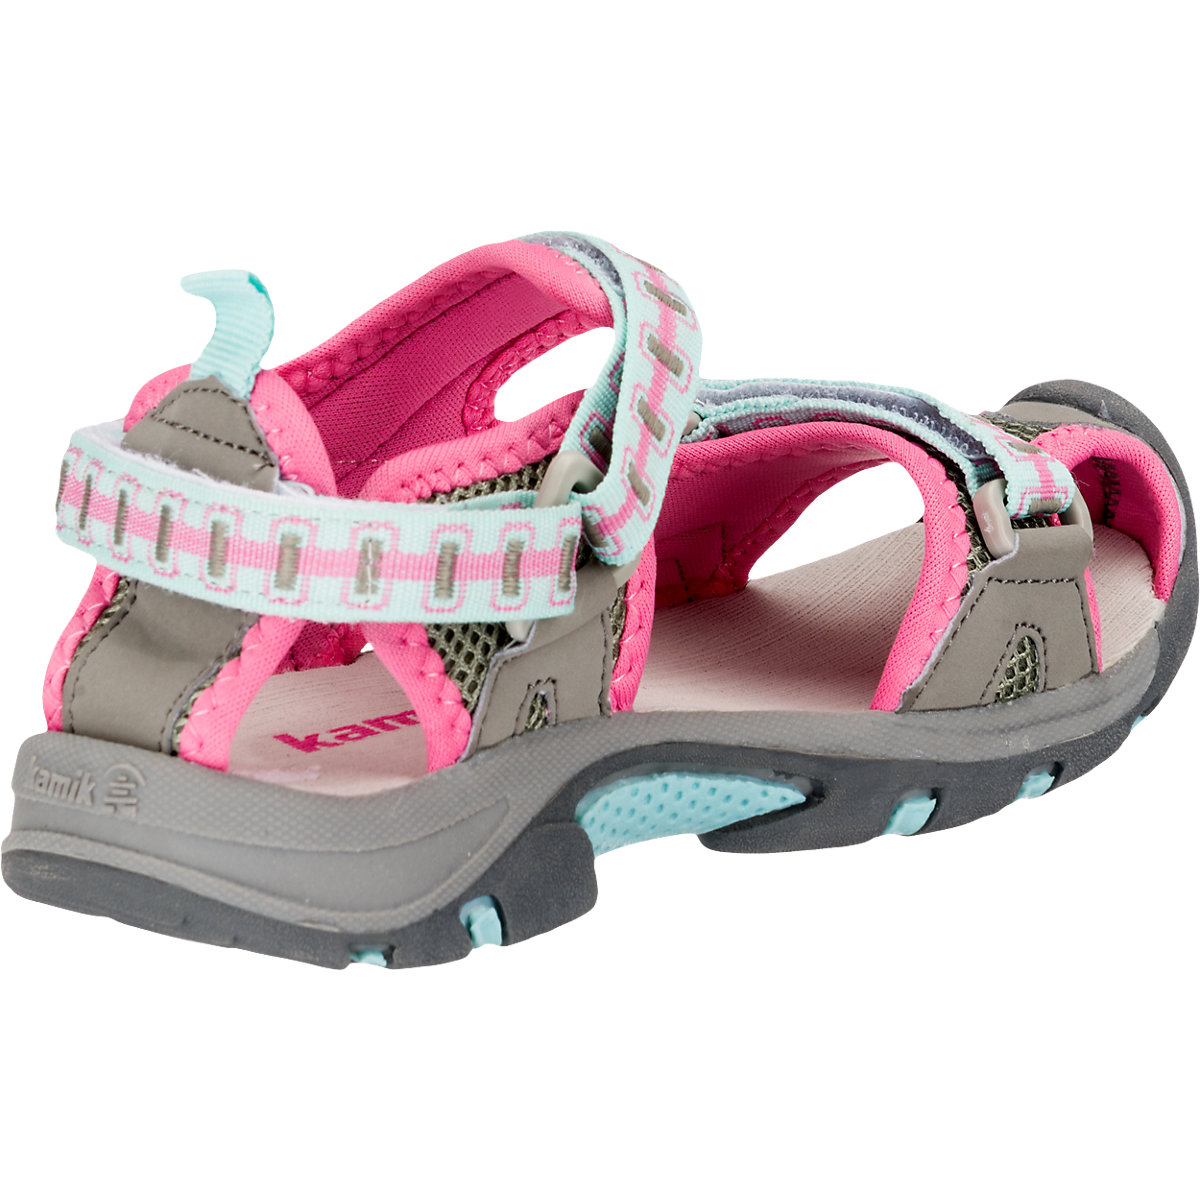 kamik kinder sandalen jetty pink mirapodo. Black Bedroom Furniture Sets. Home Design Ideas